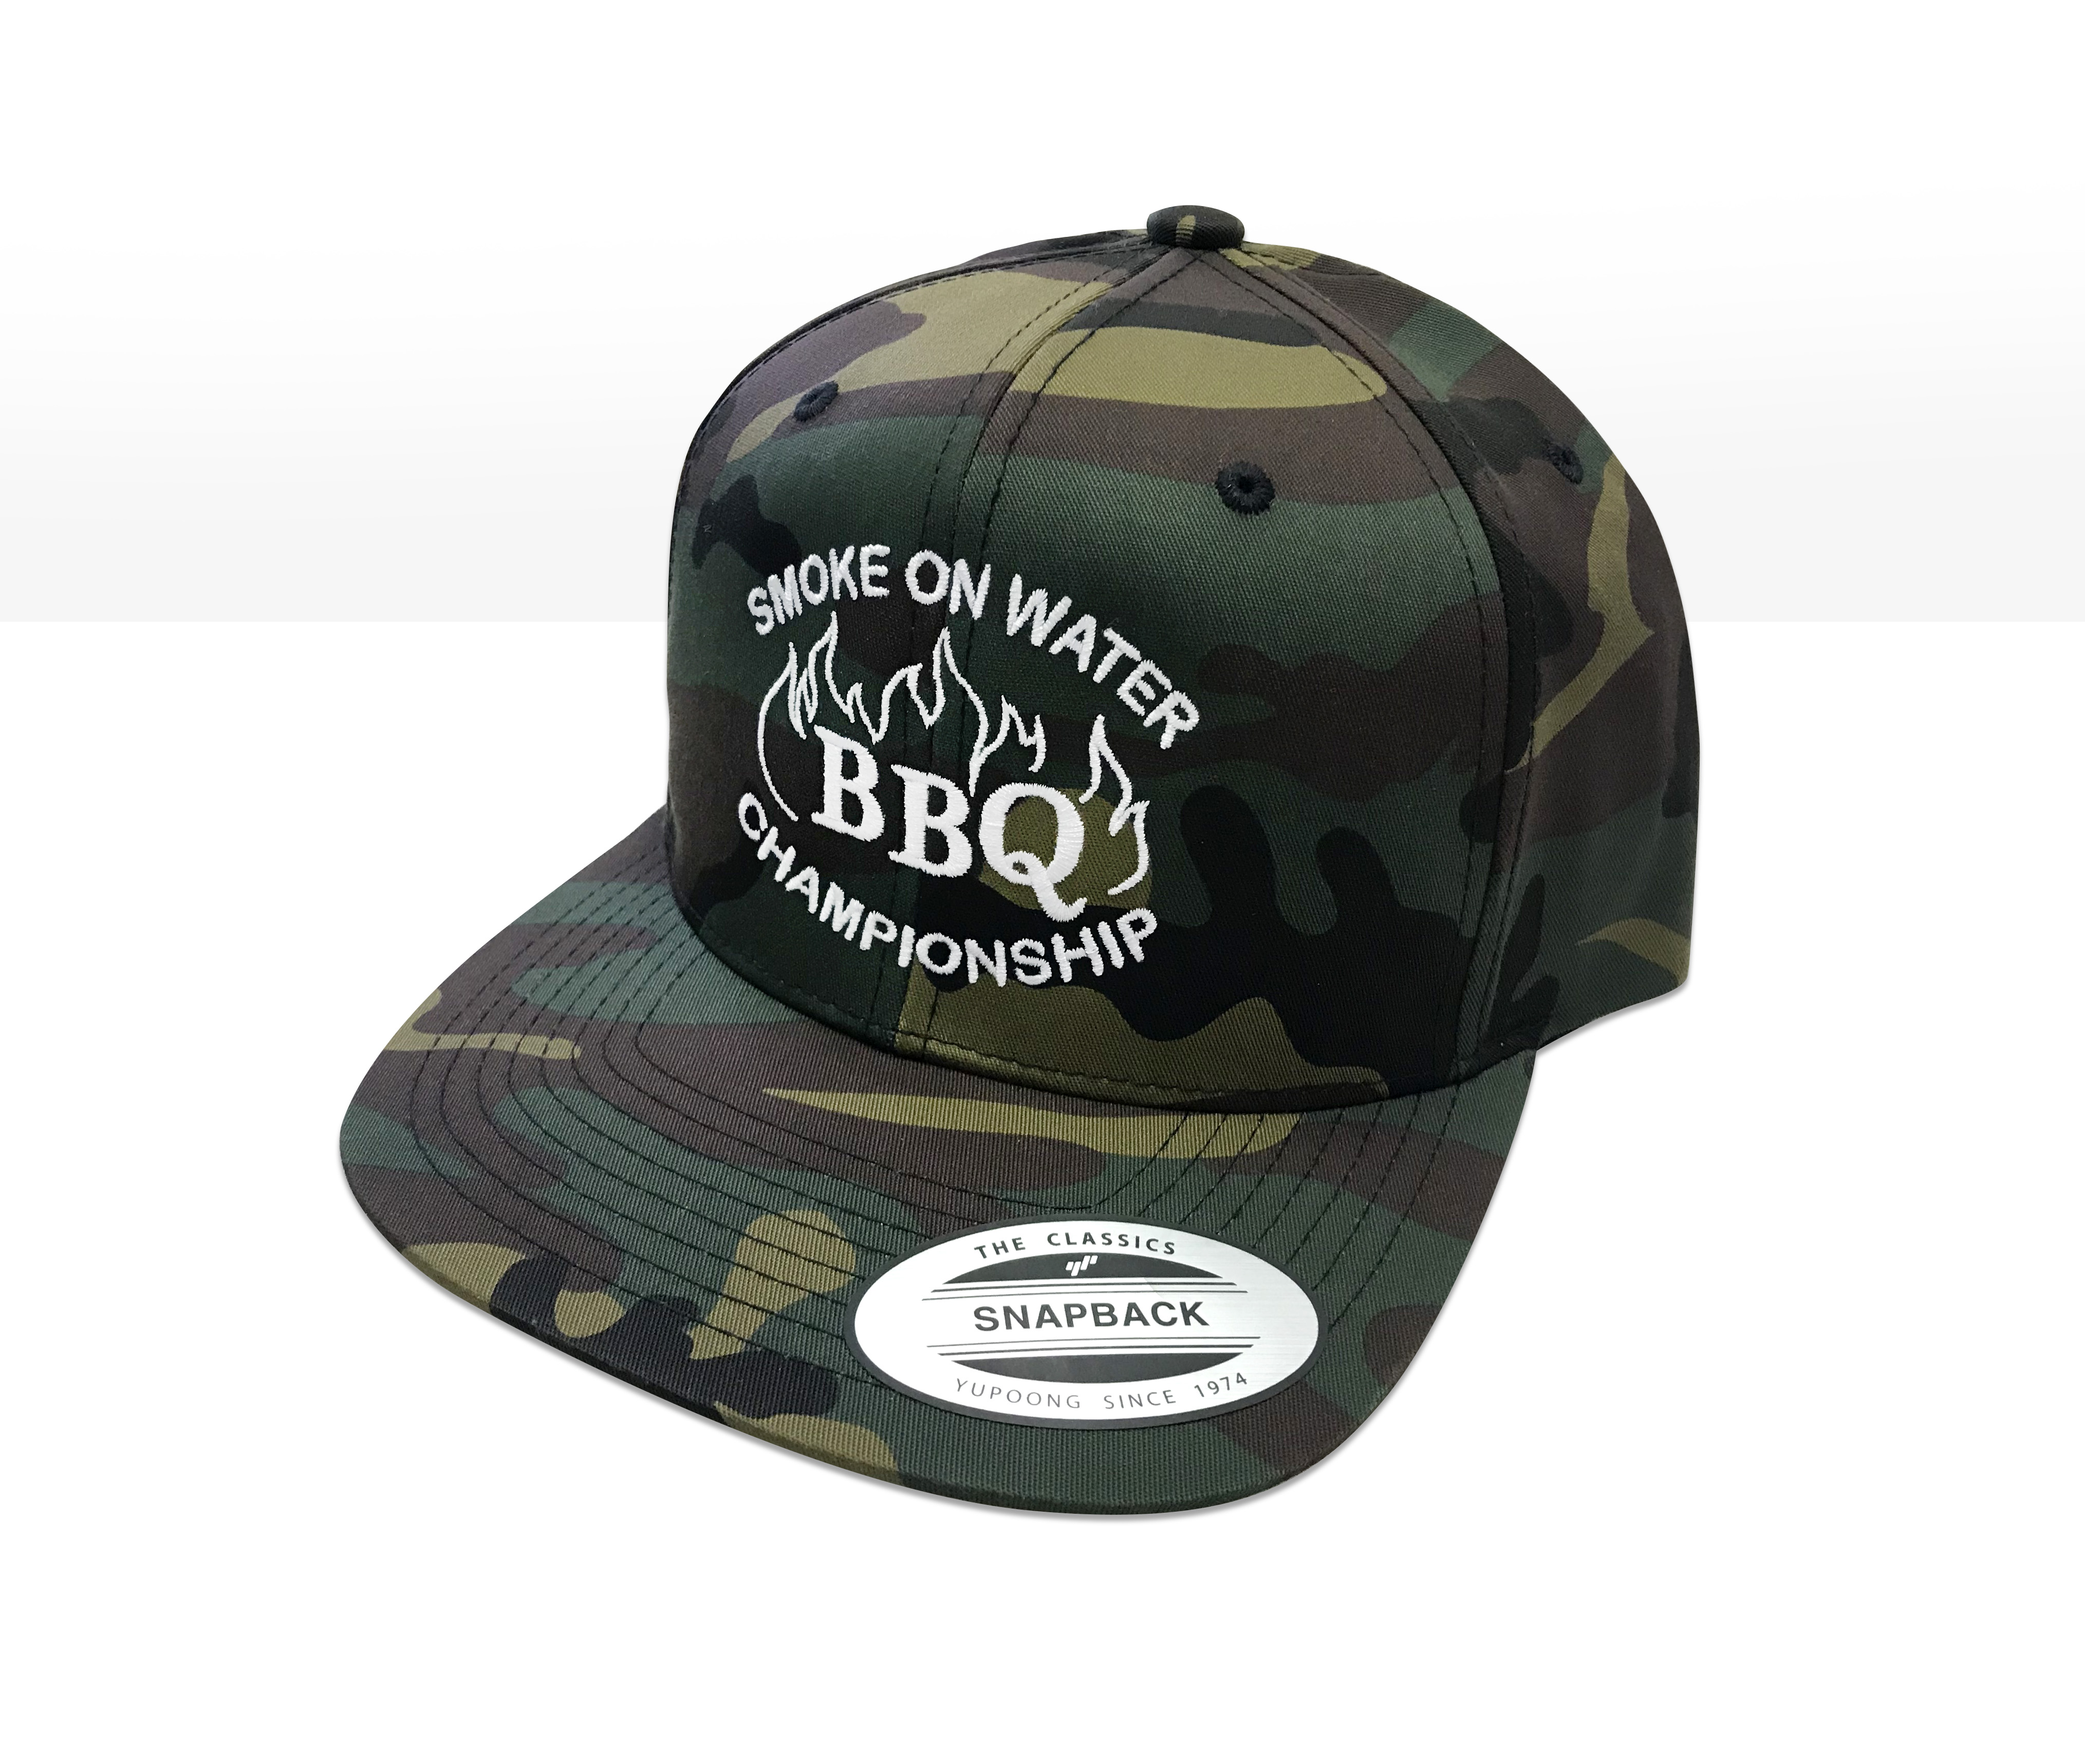 Smoke on Water Snapback